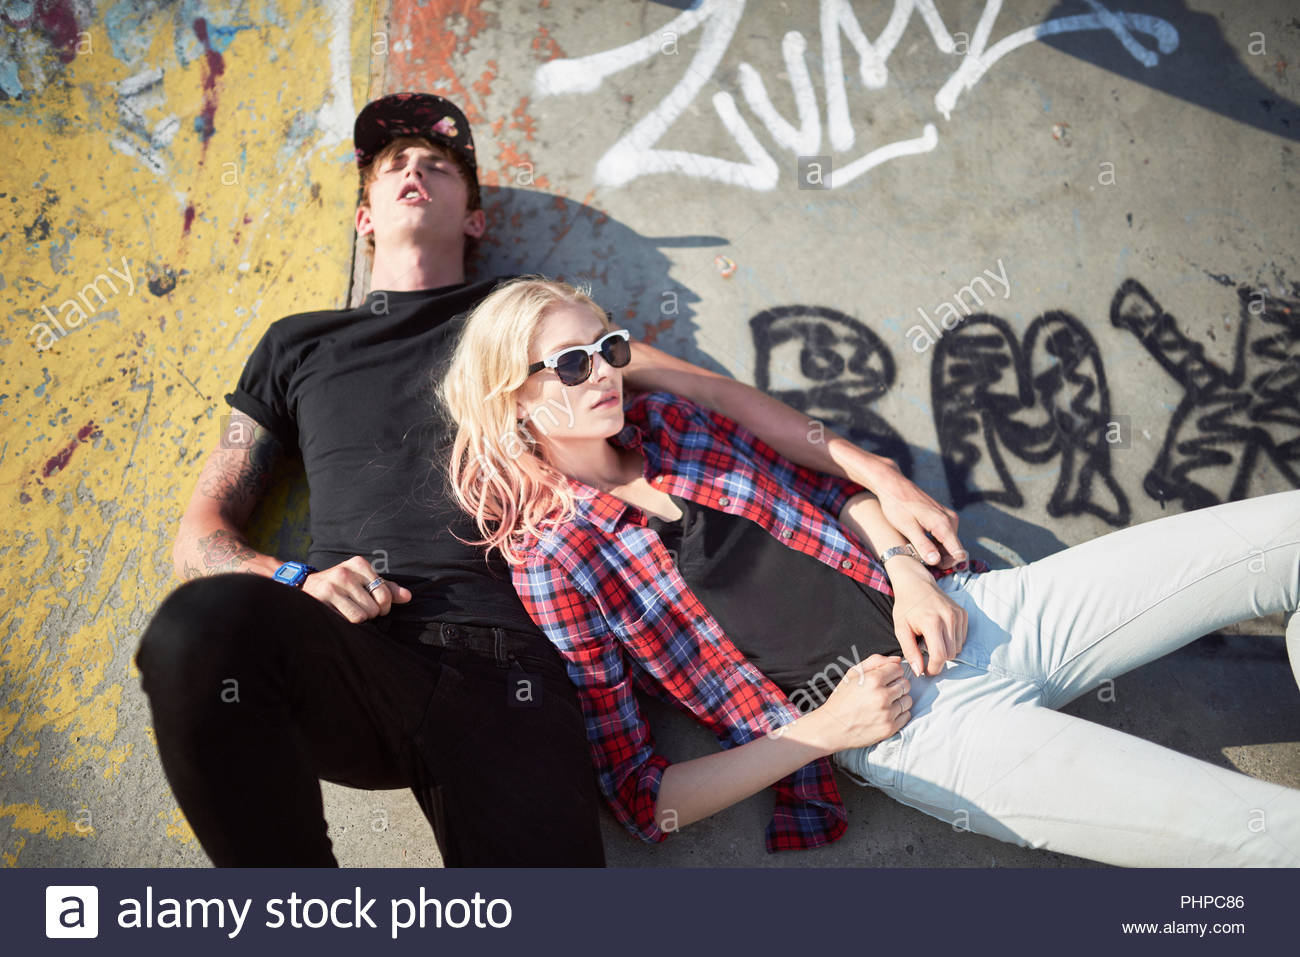 Teenage couple lying down at skatepark - Stock Image